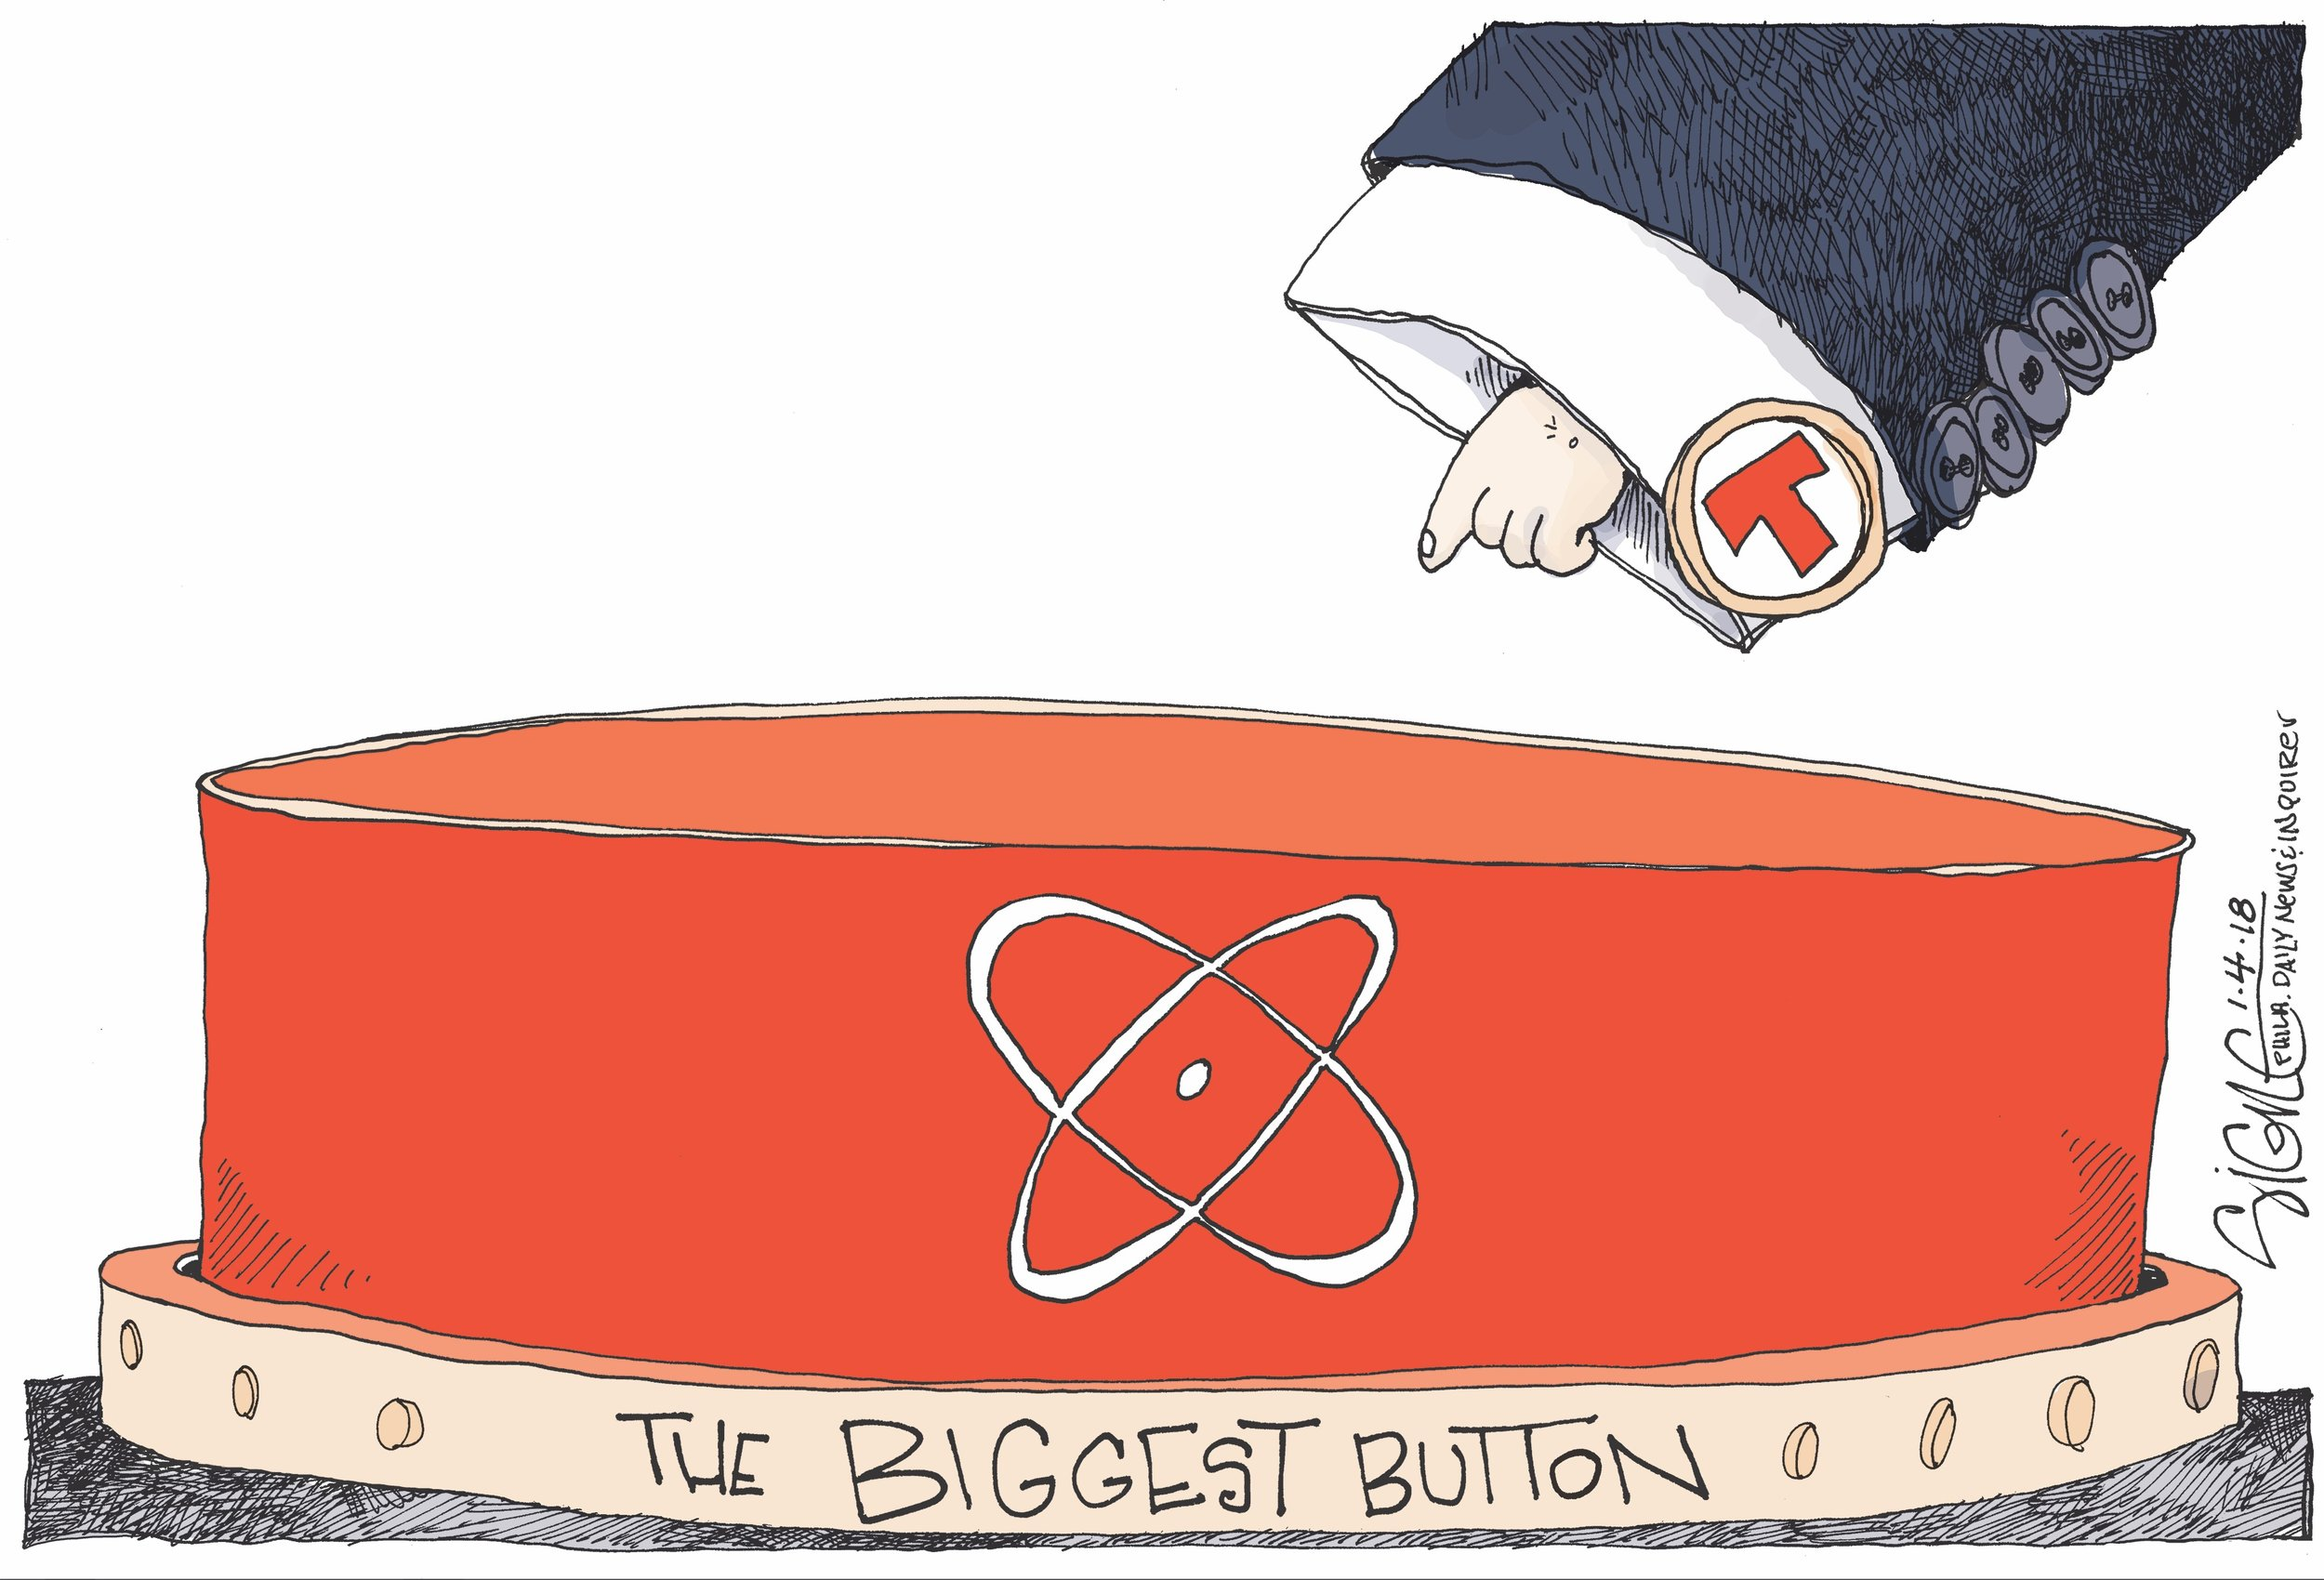 01-04-18 Biggest Nuclear ButtonC copy.jpg